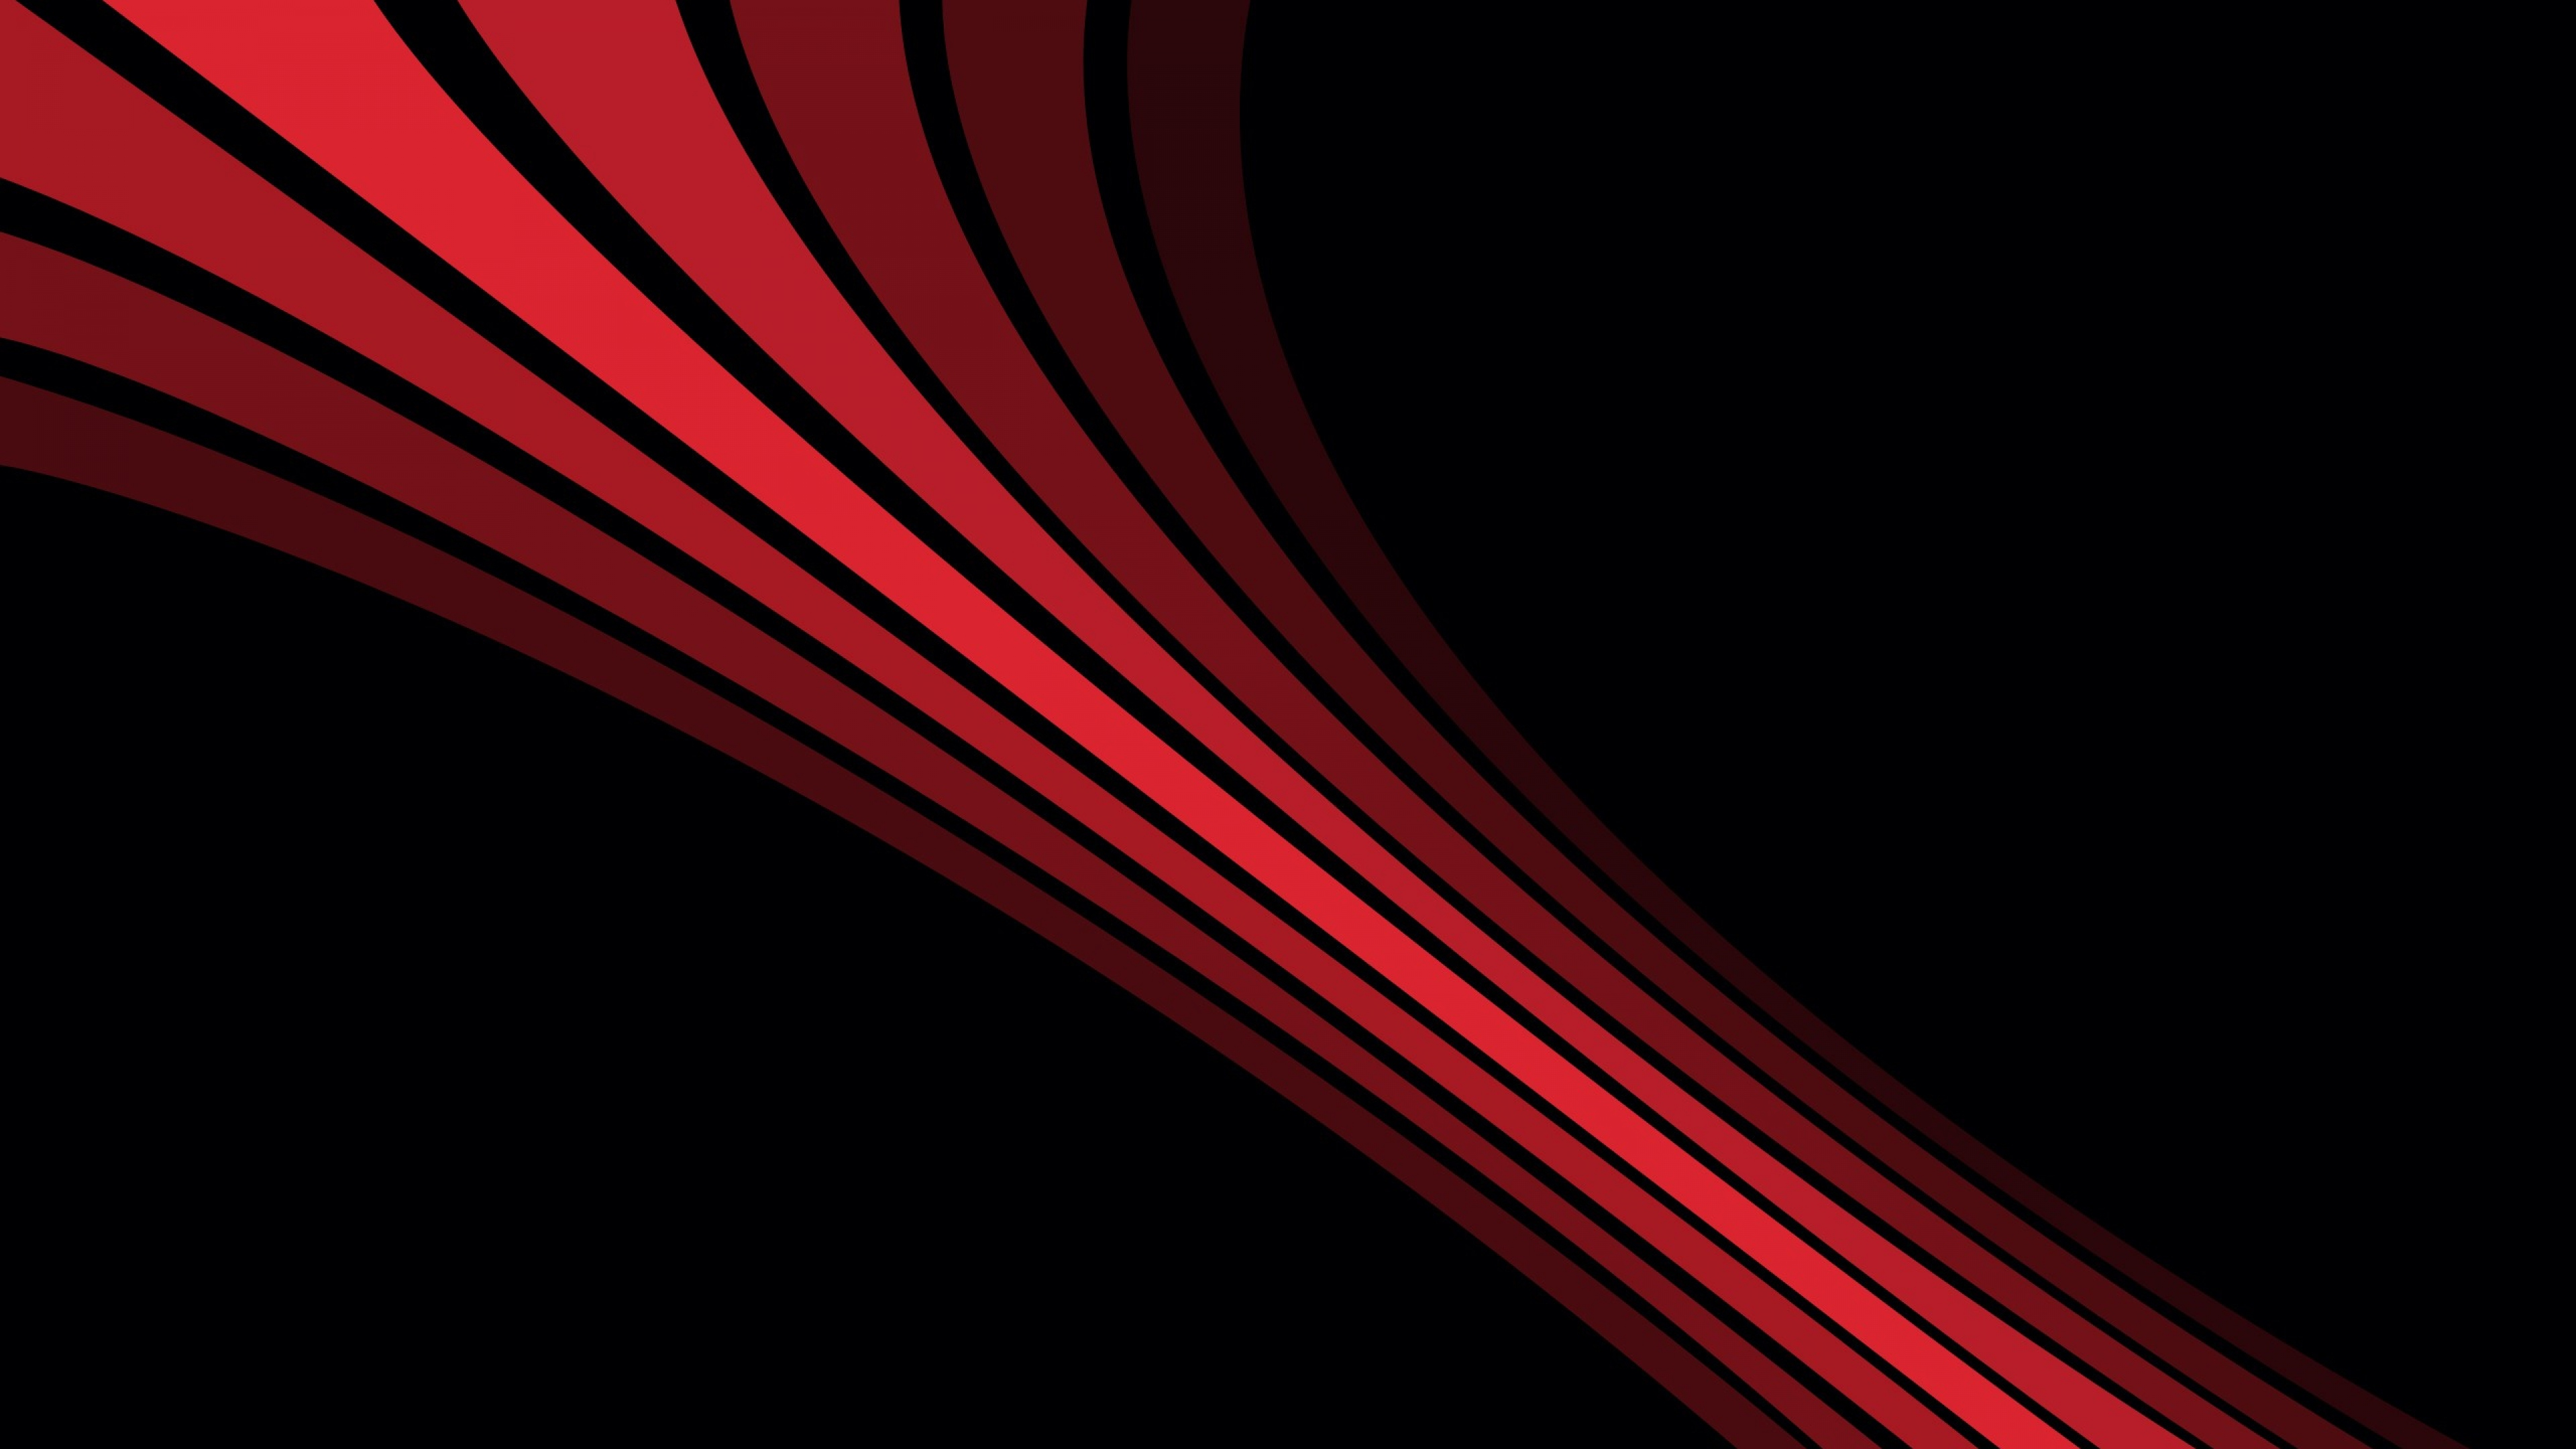 Red and black 4k wallpaper wallpapersafari for Black red wallpaper